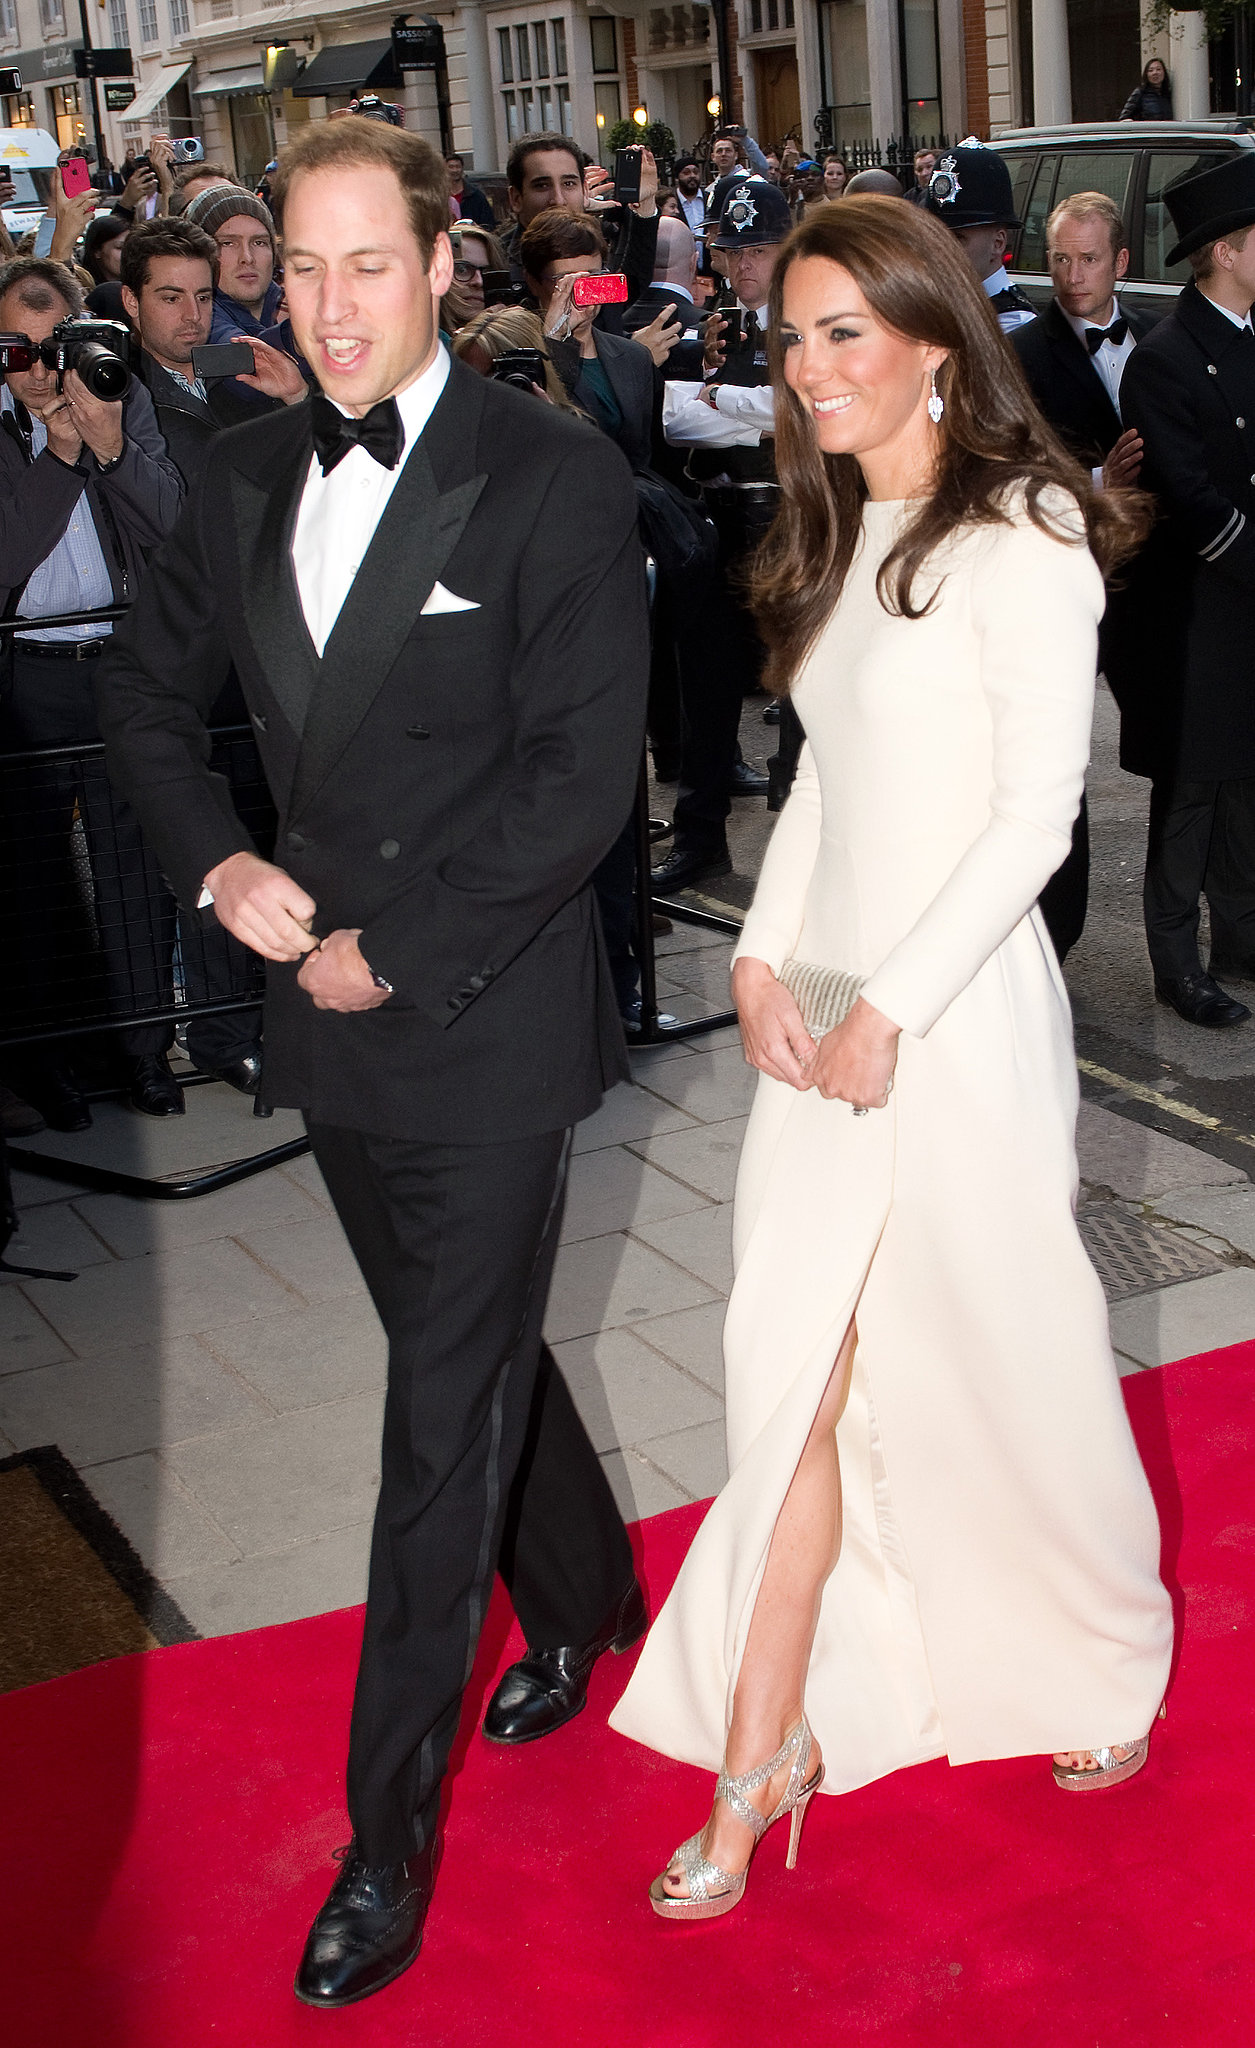 The Royal Couple at a Dinner Hosted by the Thirty Club